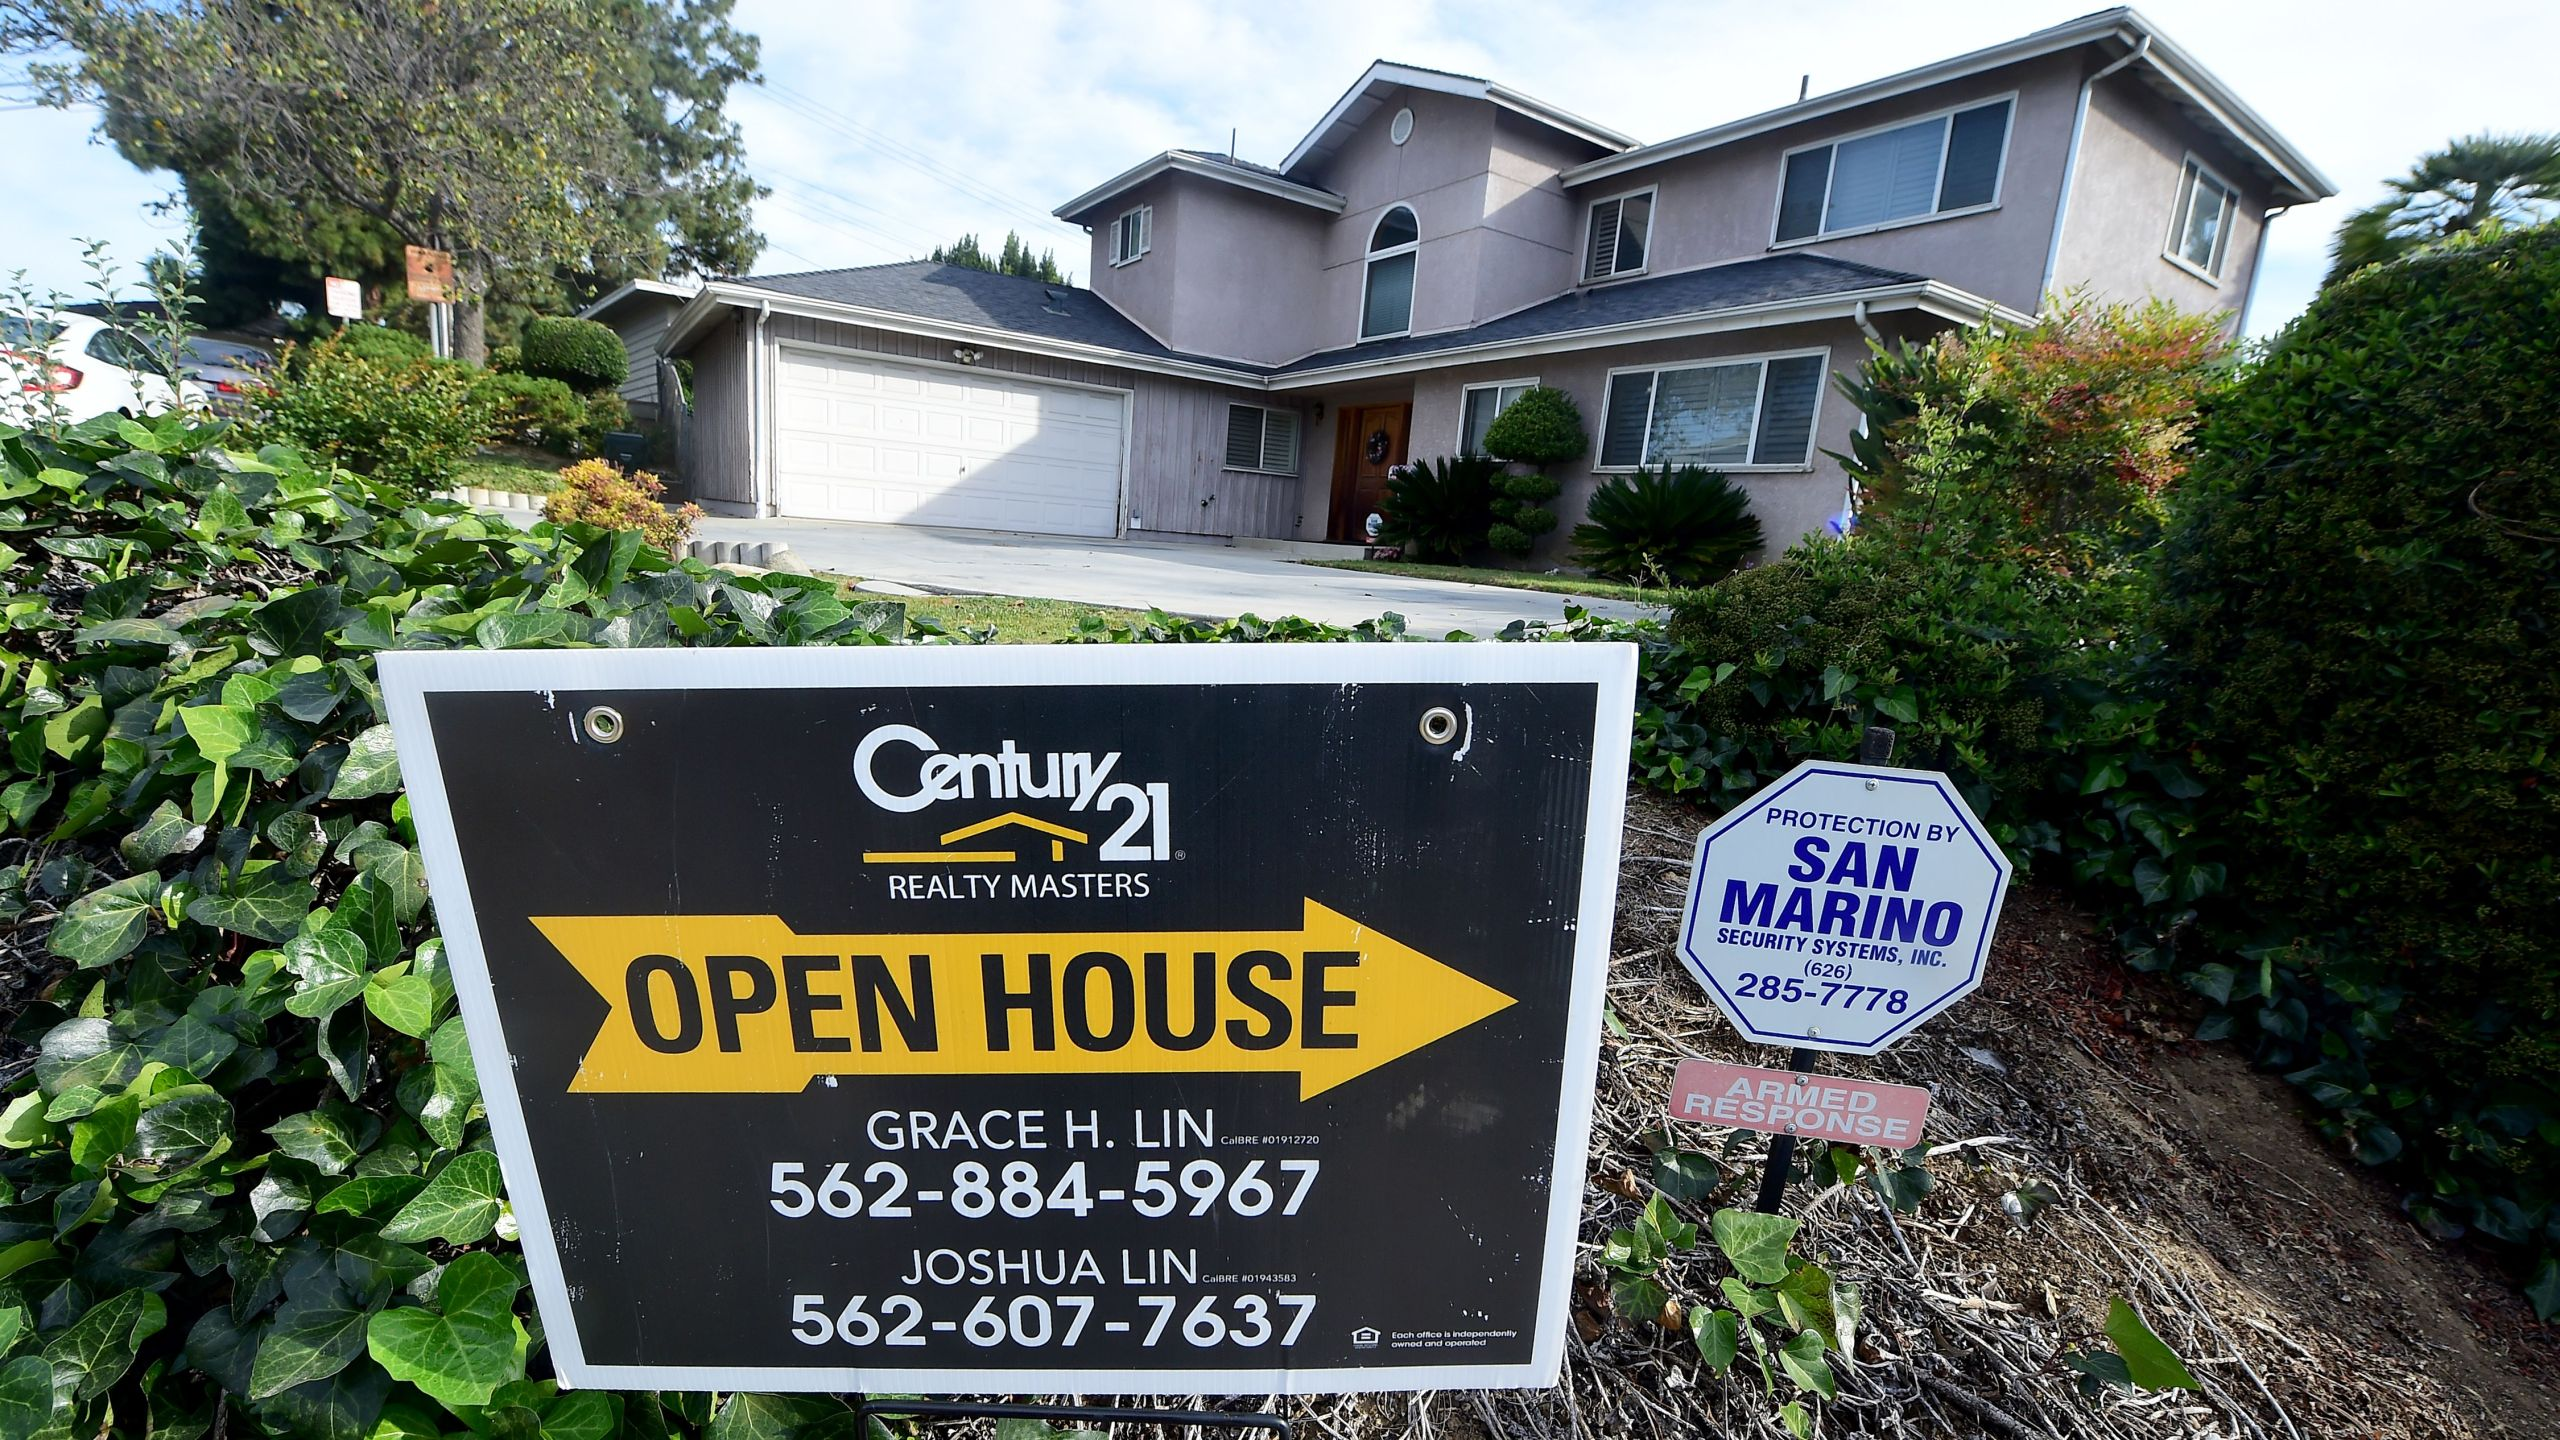 An open house sign directs prospective buyers to property for sale in Monterey Park on April 19, 2016. (Credit: Frederic J. Brown / AFP / Getty Images)